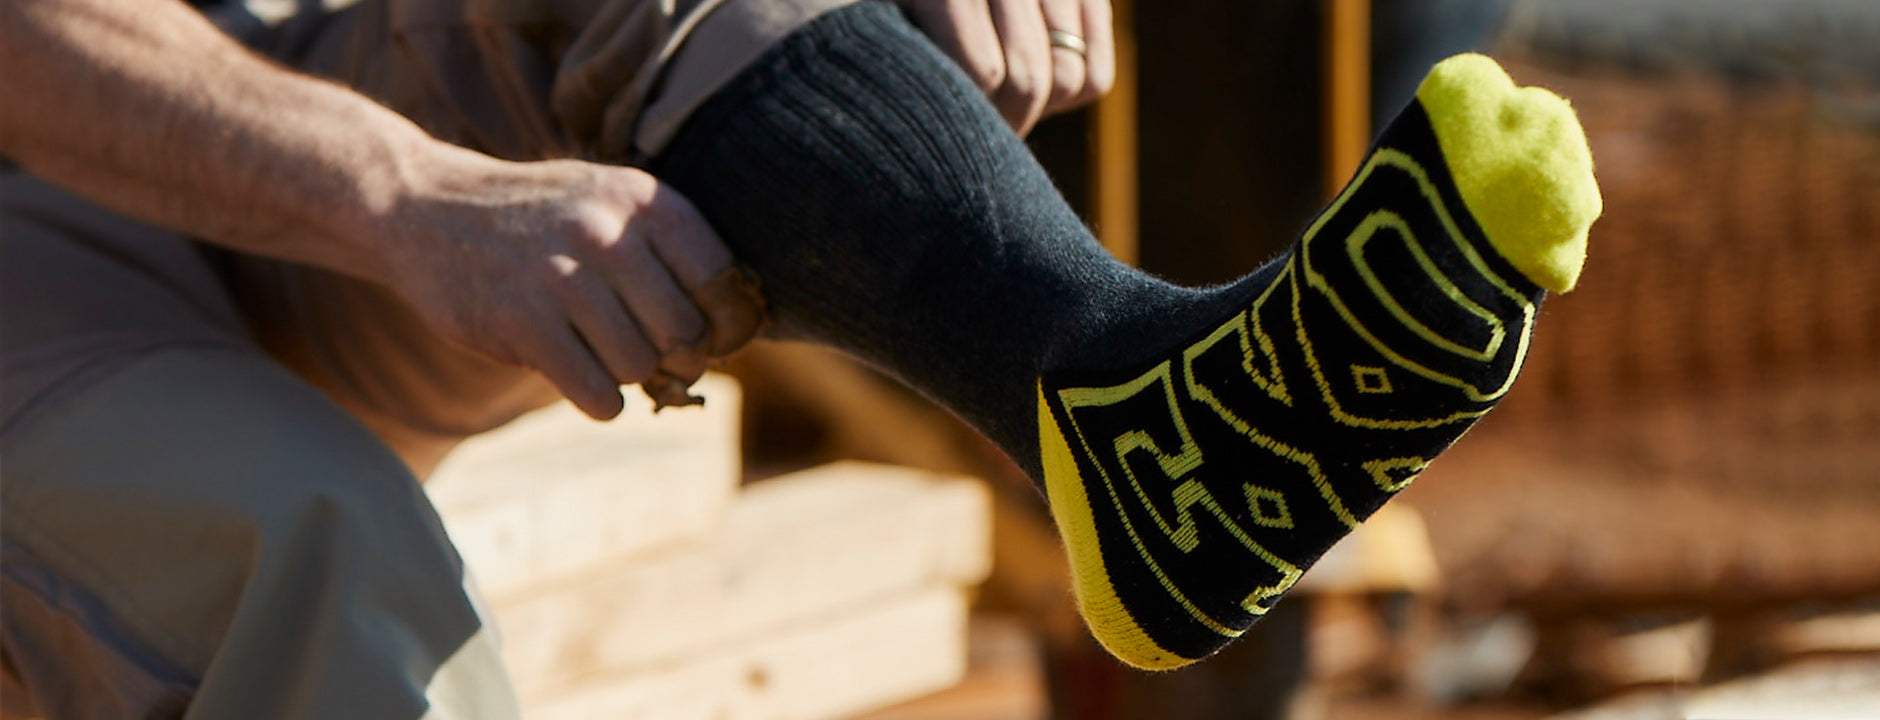 FXD Workwear Function by Design socks